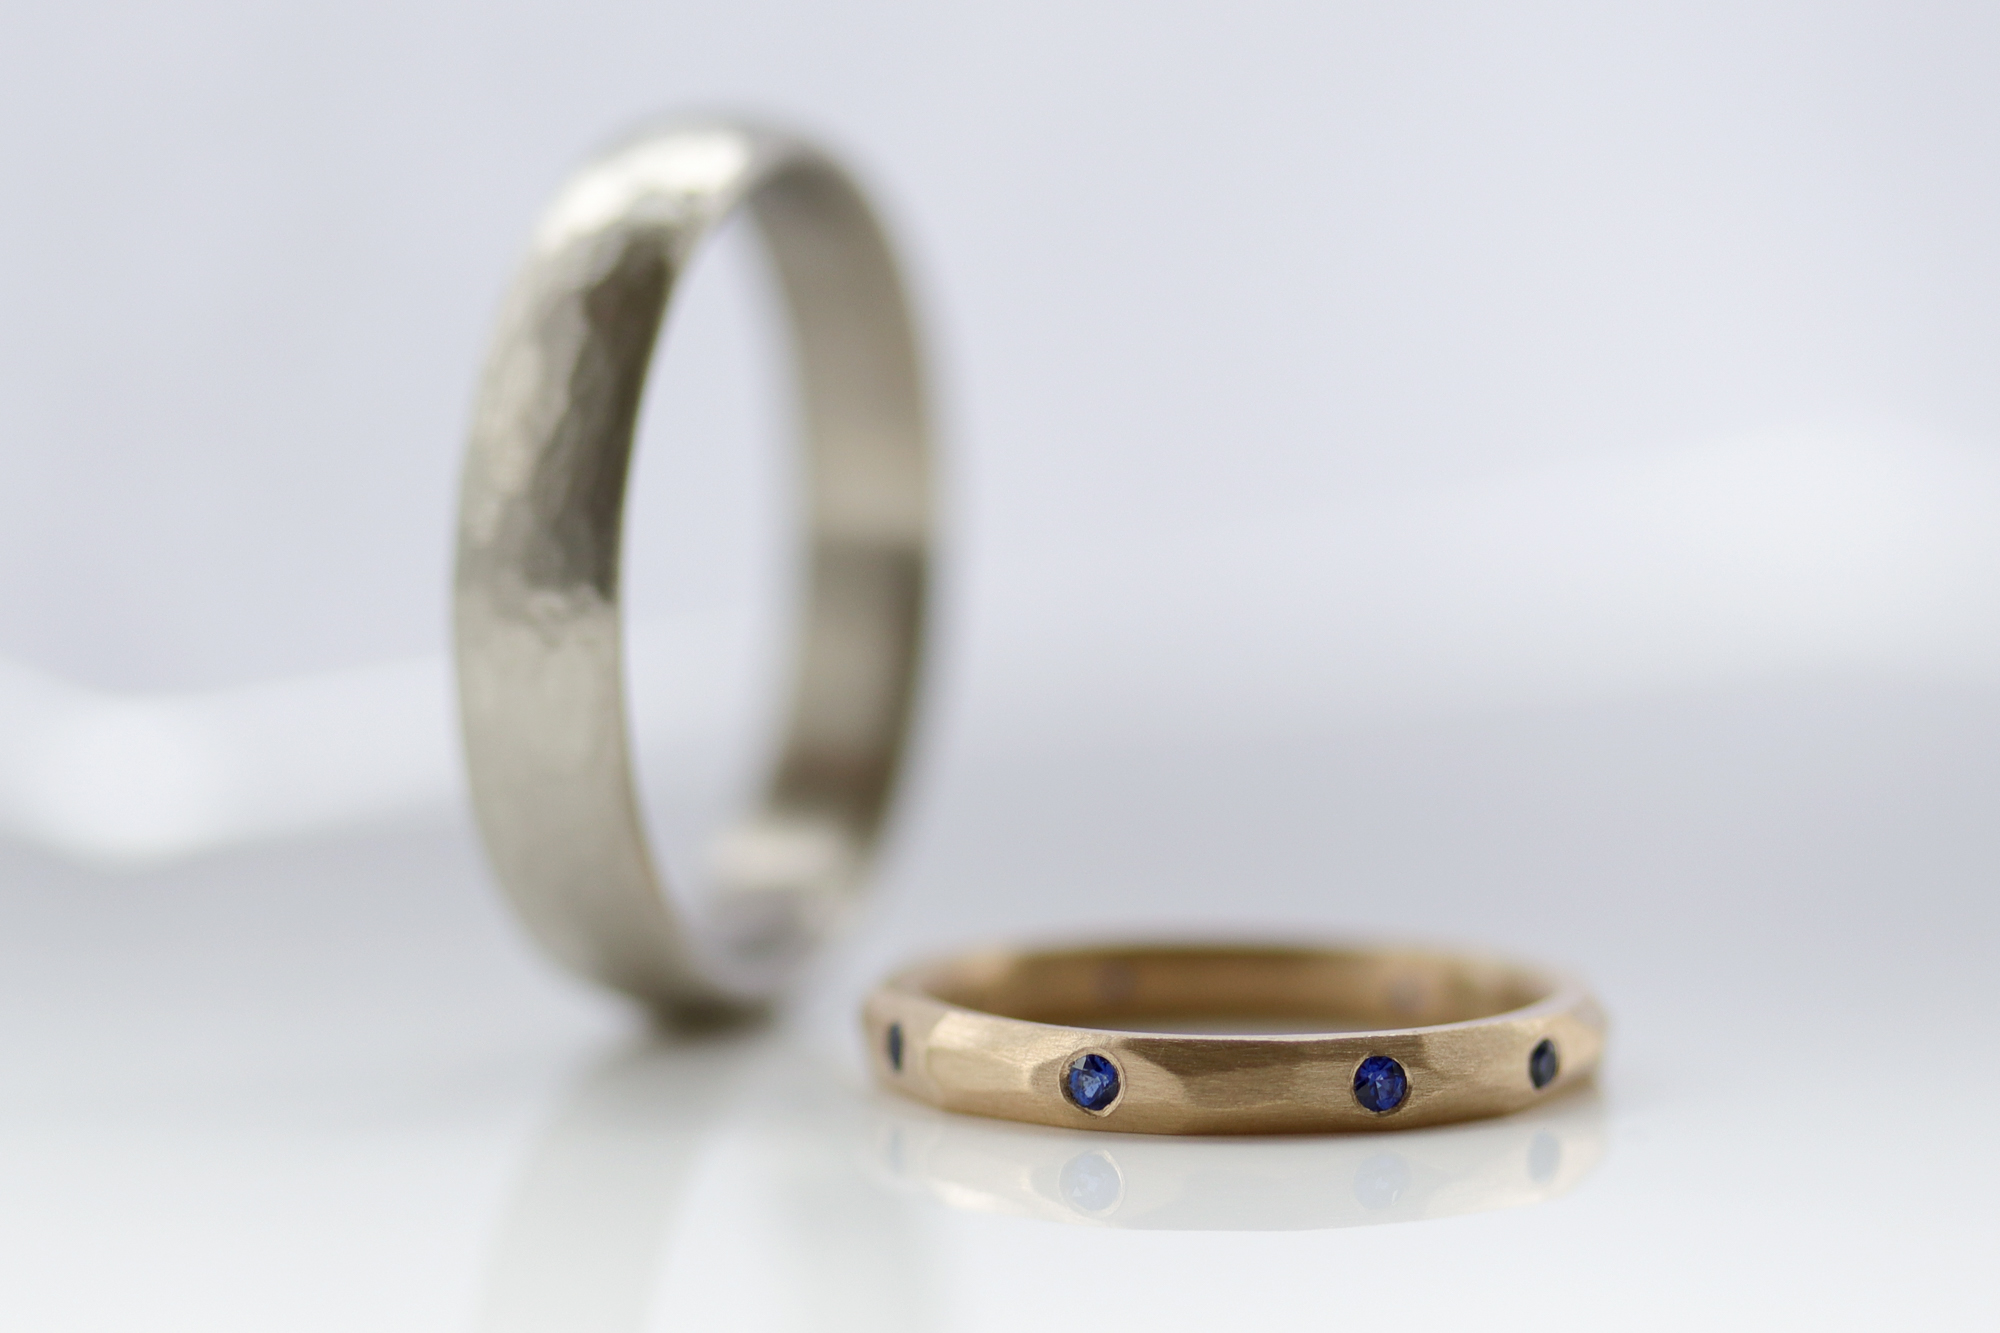 Handmade Wedding Bands by Aide-Memoire Jewelry